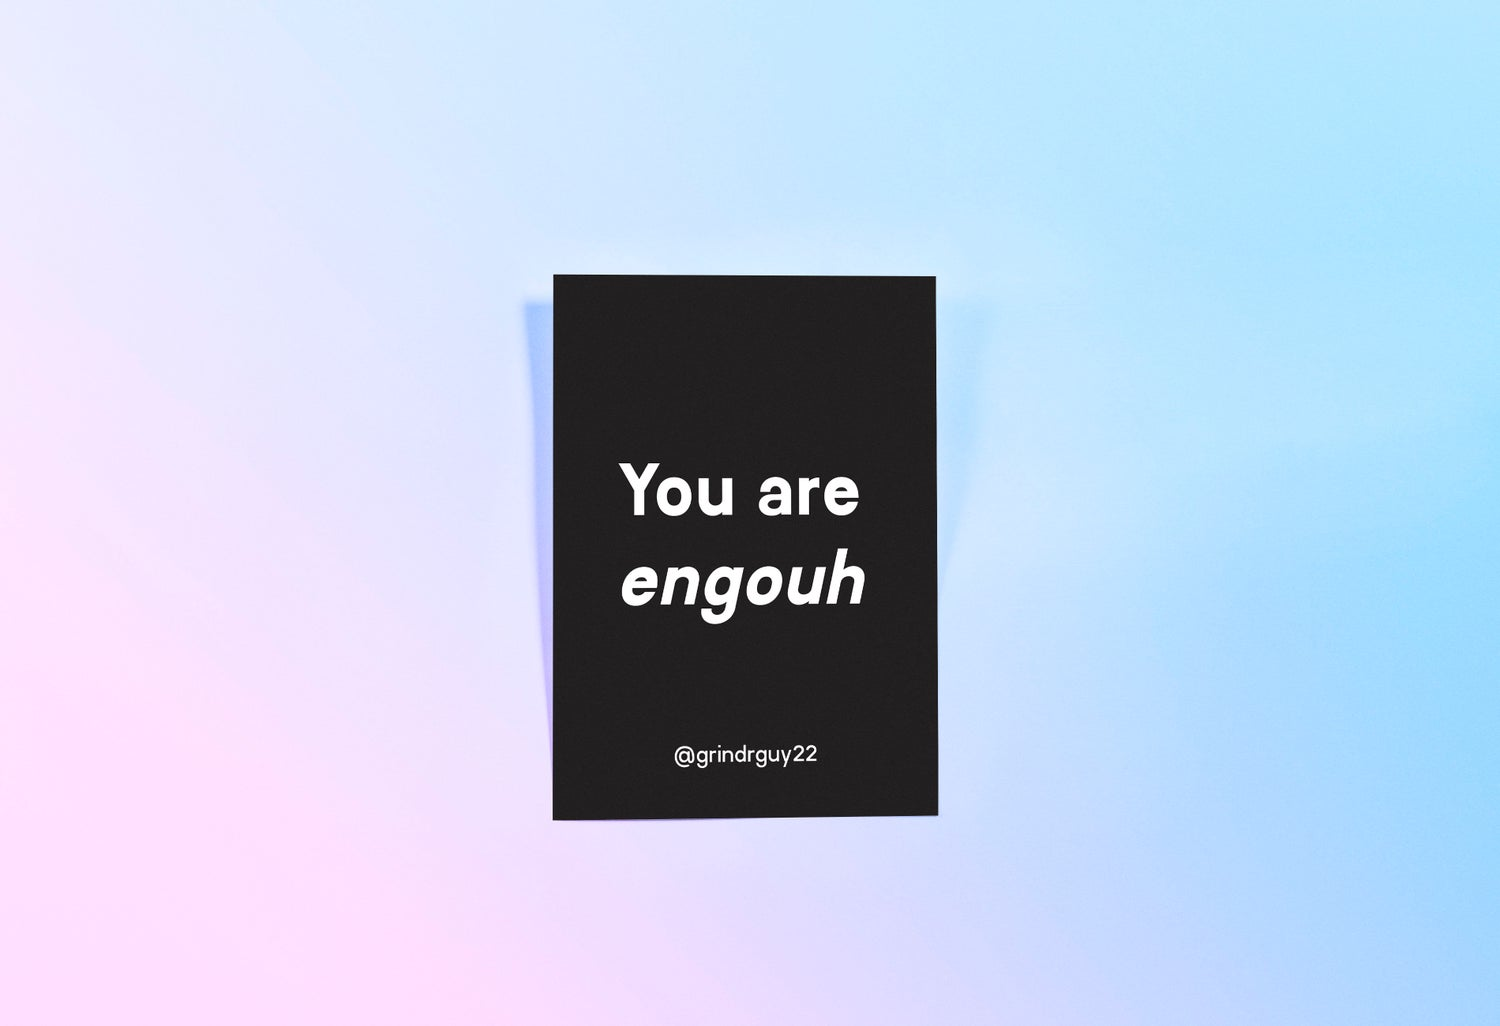 Image of You are engouh